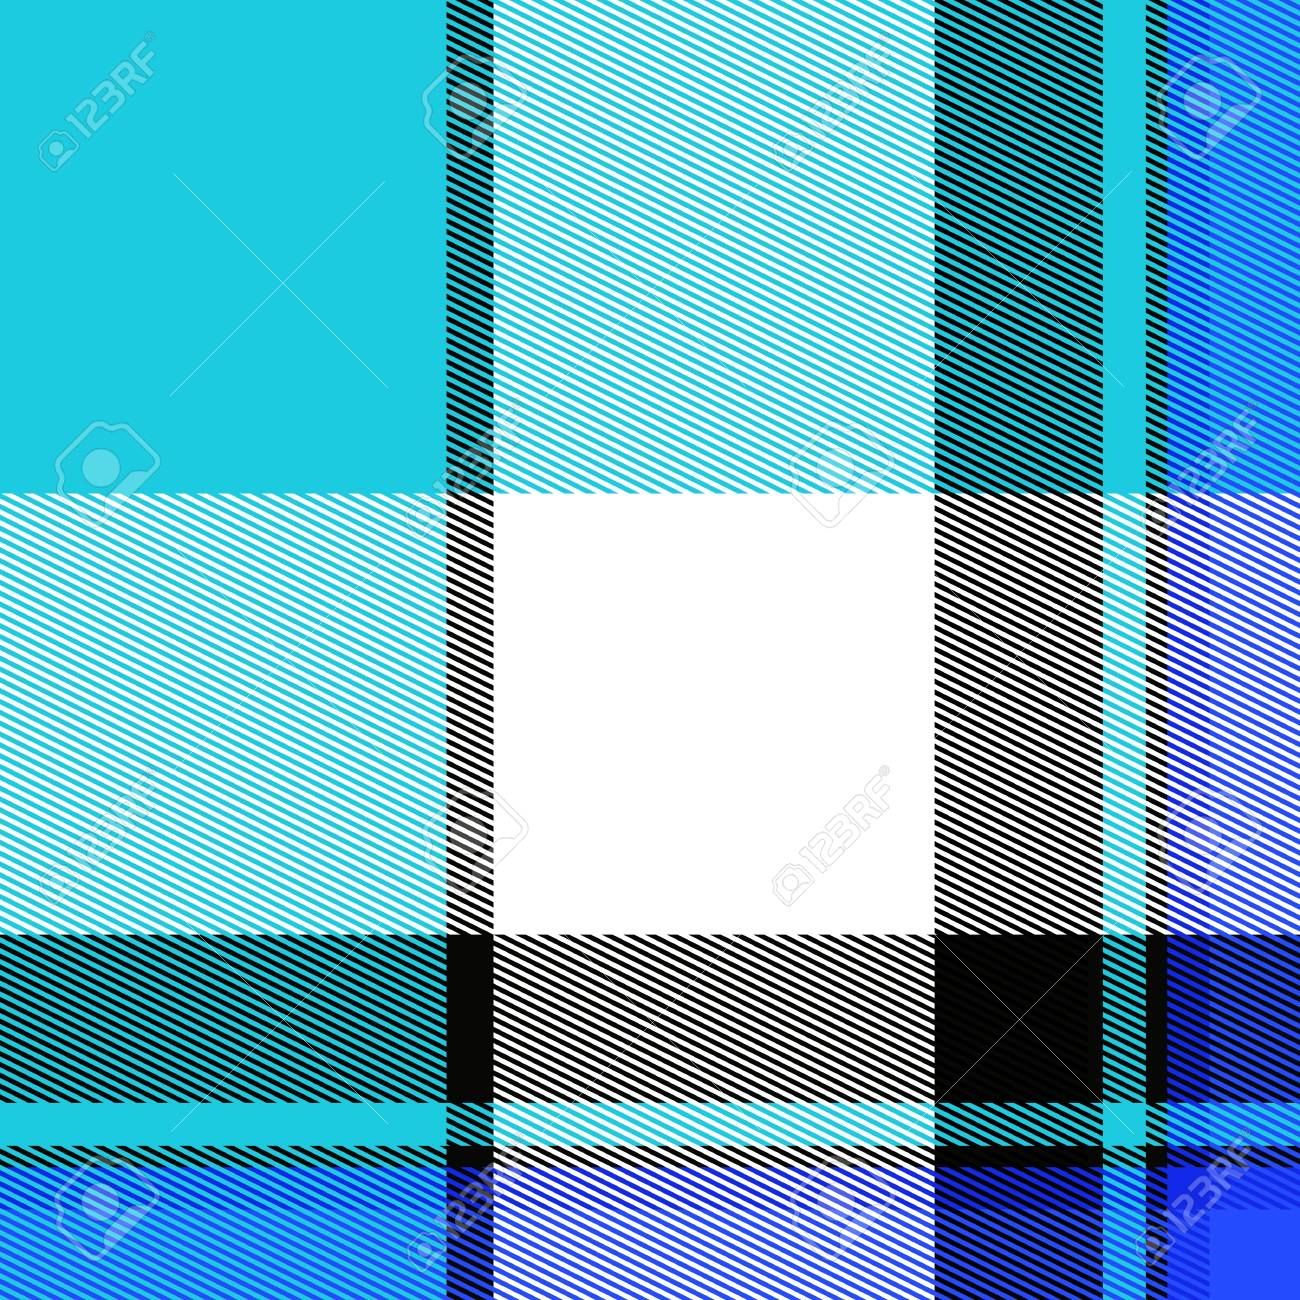 A blue striped plaid pattern that tiles seamlessly. Stock Photo - 8908585